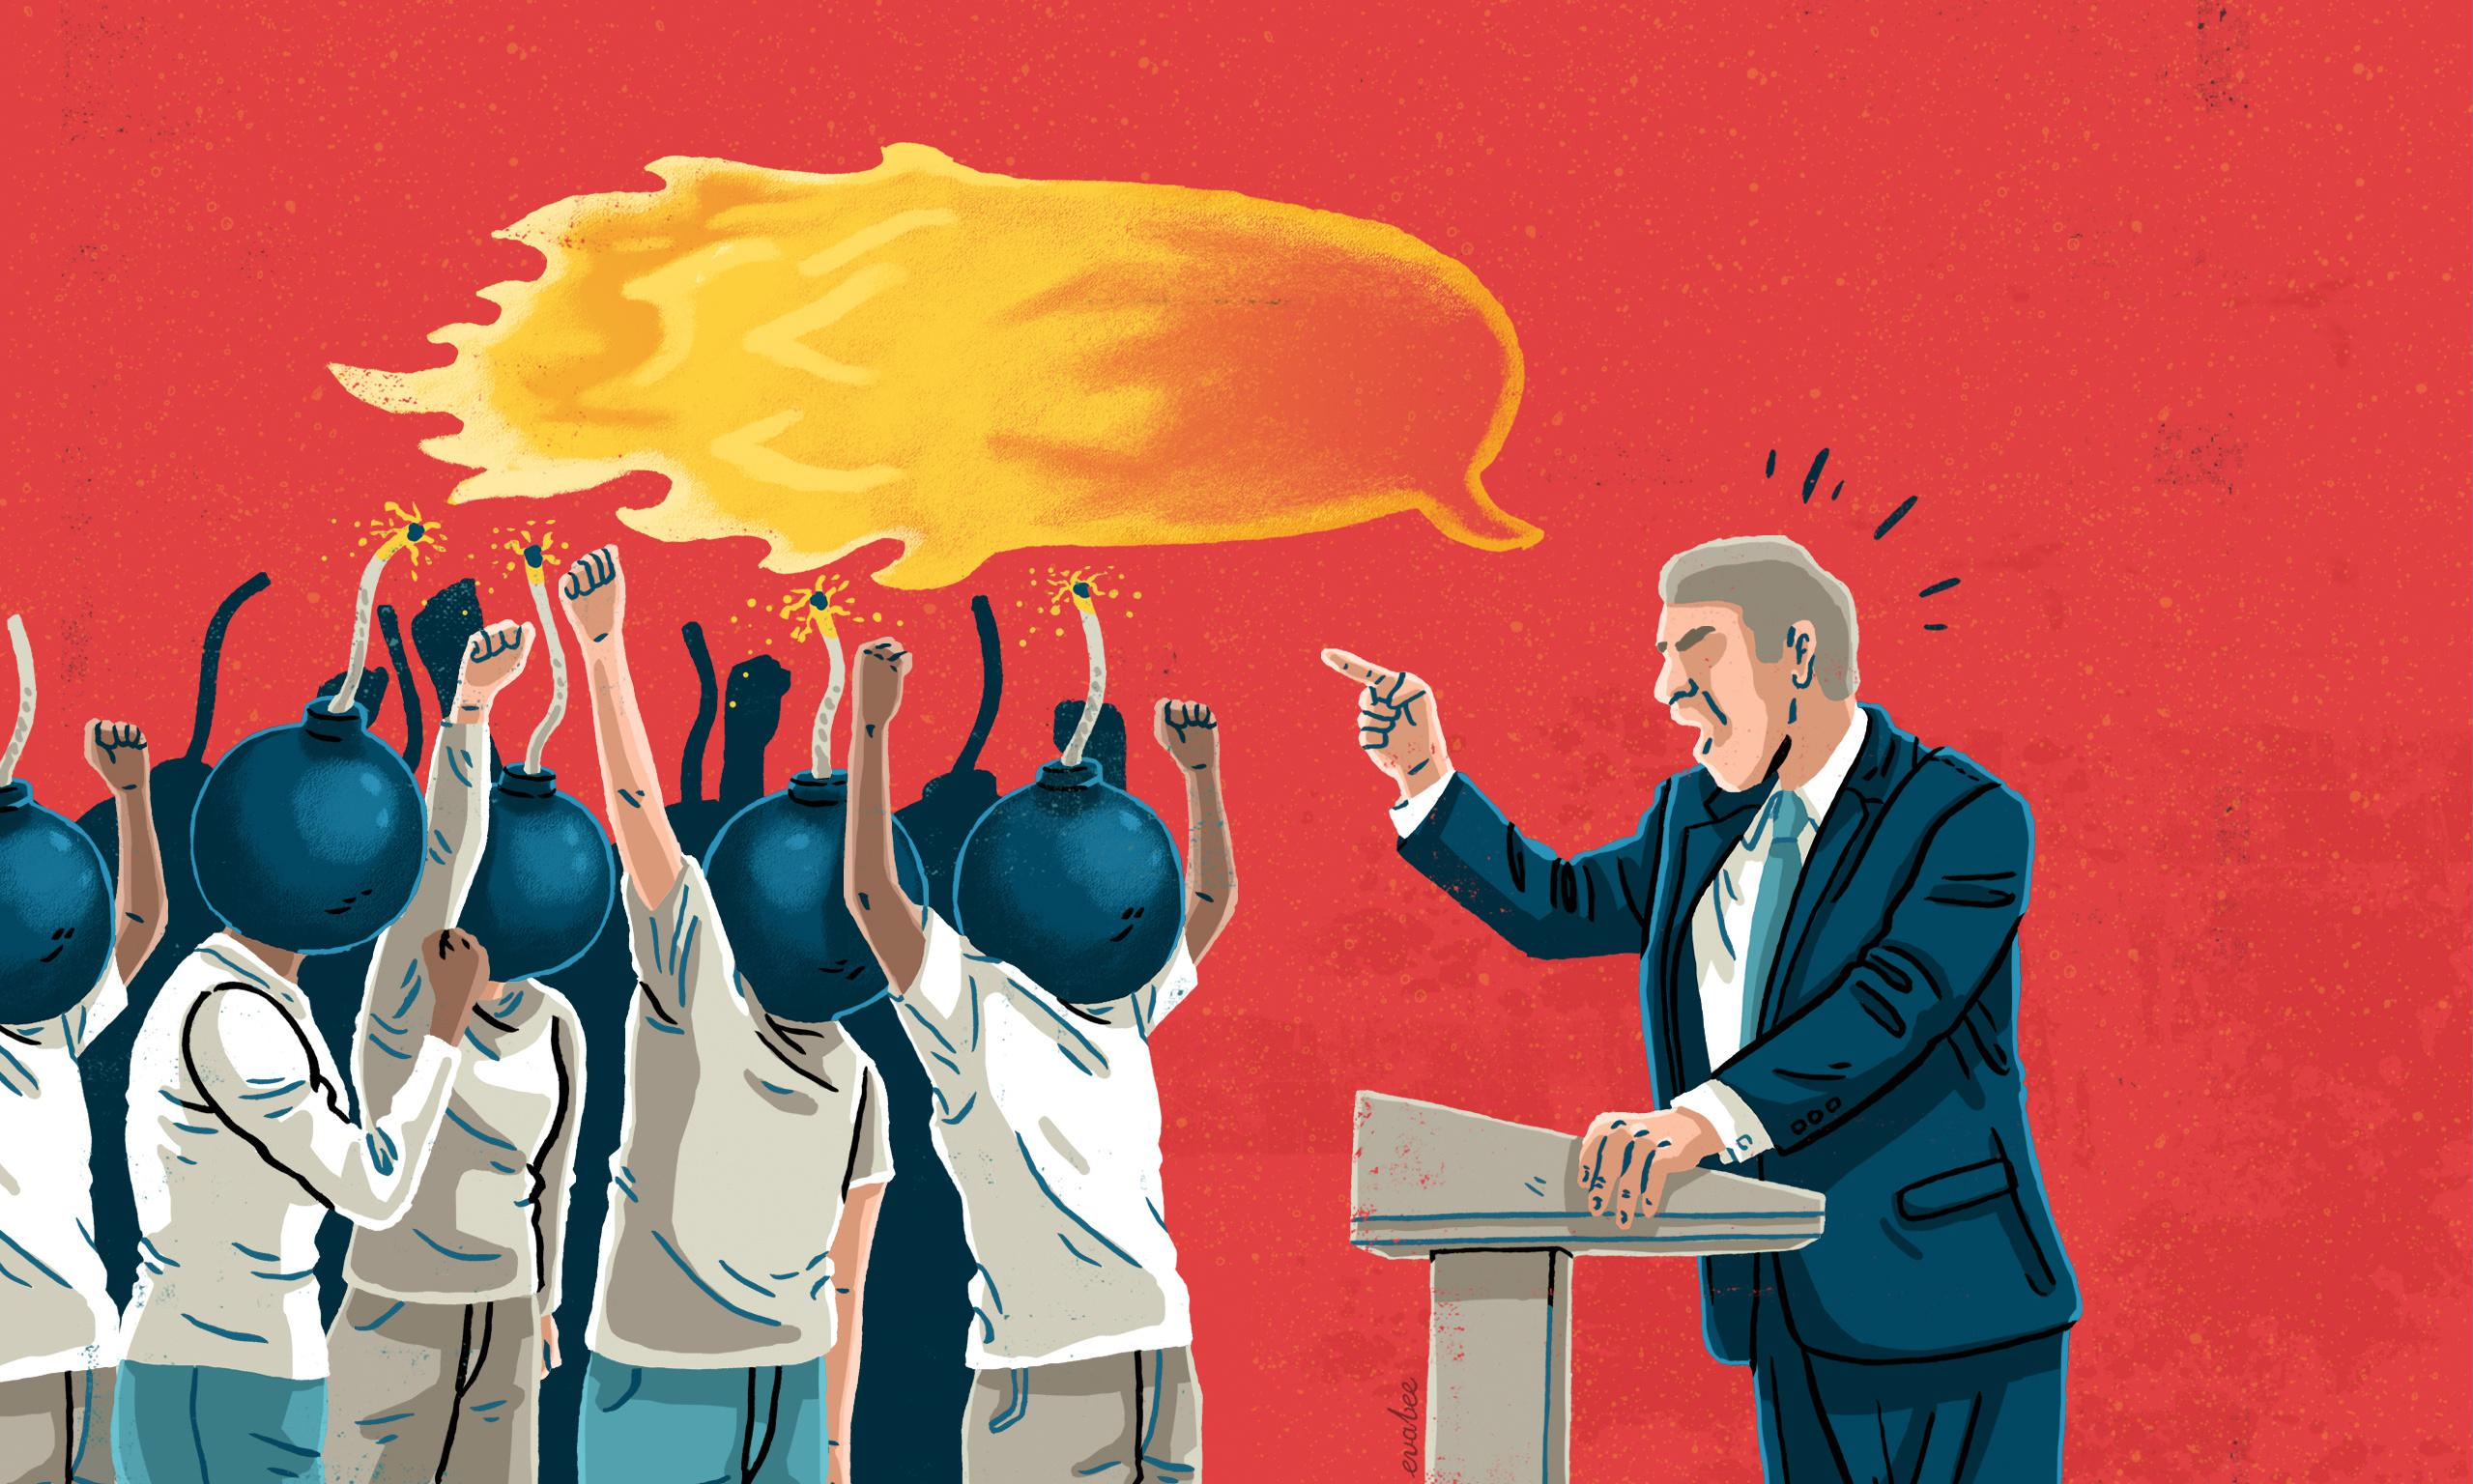 Demagogues thrive by whipping up our fury. Here's how to thwart them